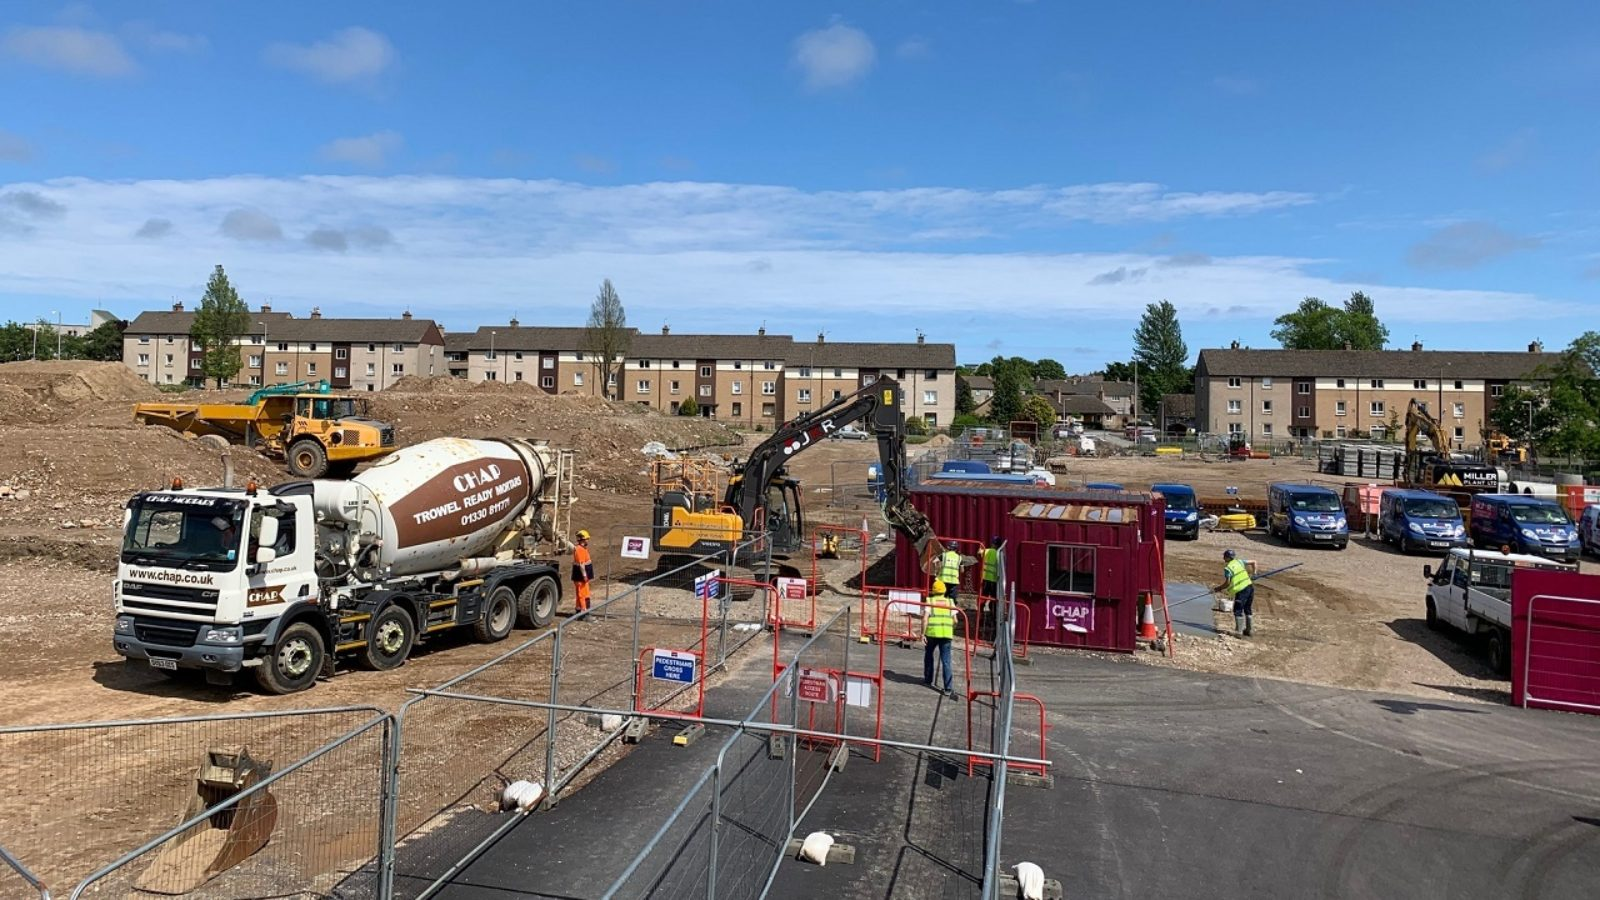 Work resumes on city's council house building programme